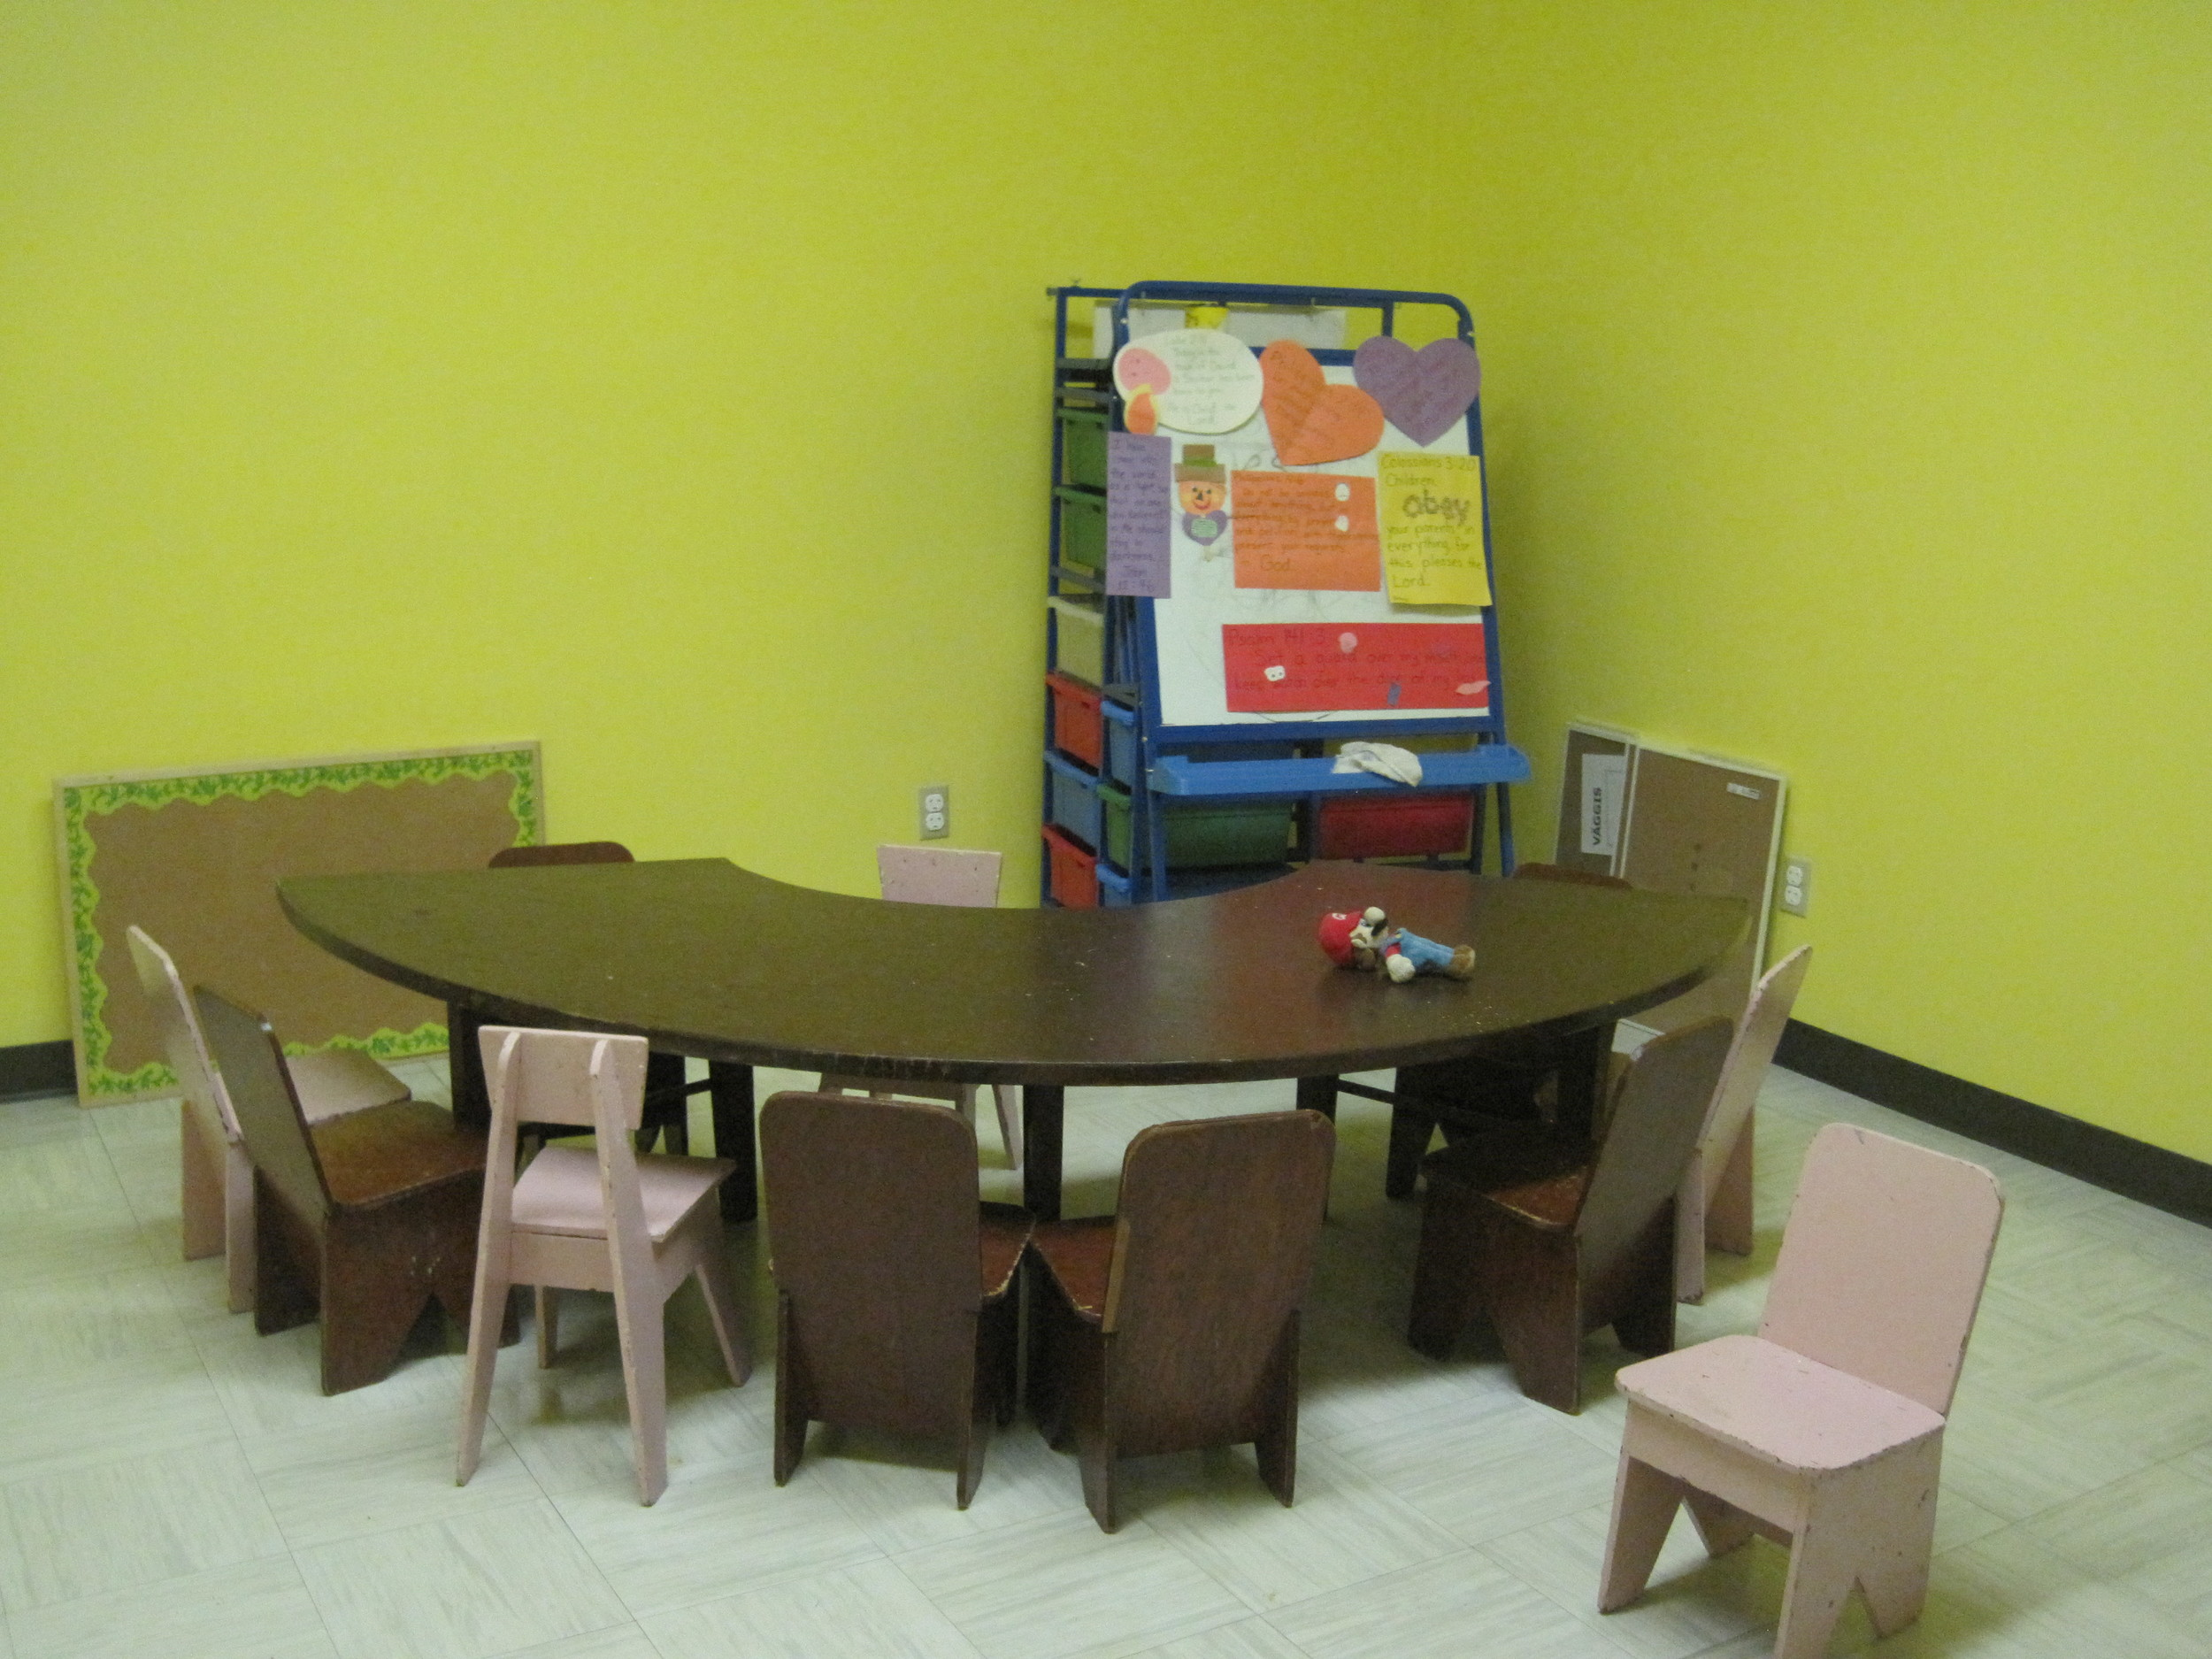 Our bright yellow Pre-K Sunday School room creates a welcome and inviting space for children to play and learn!